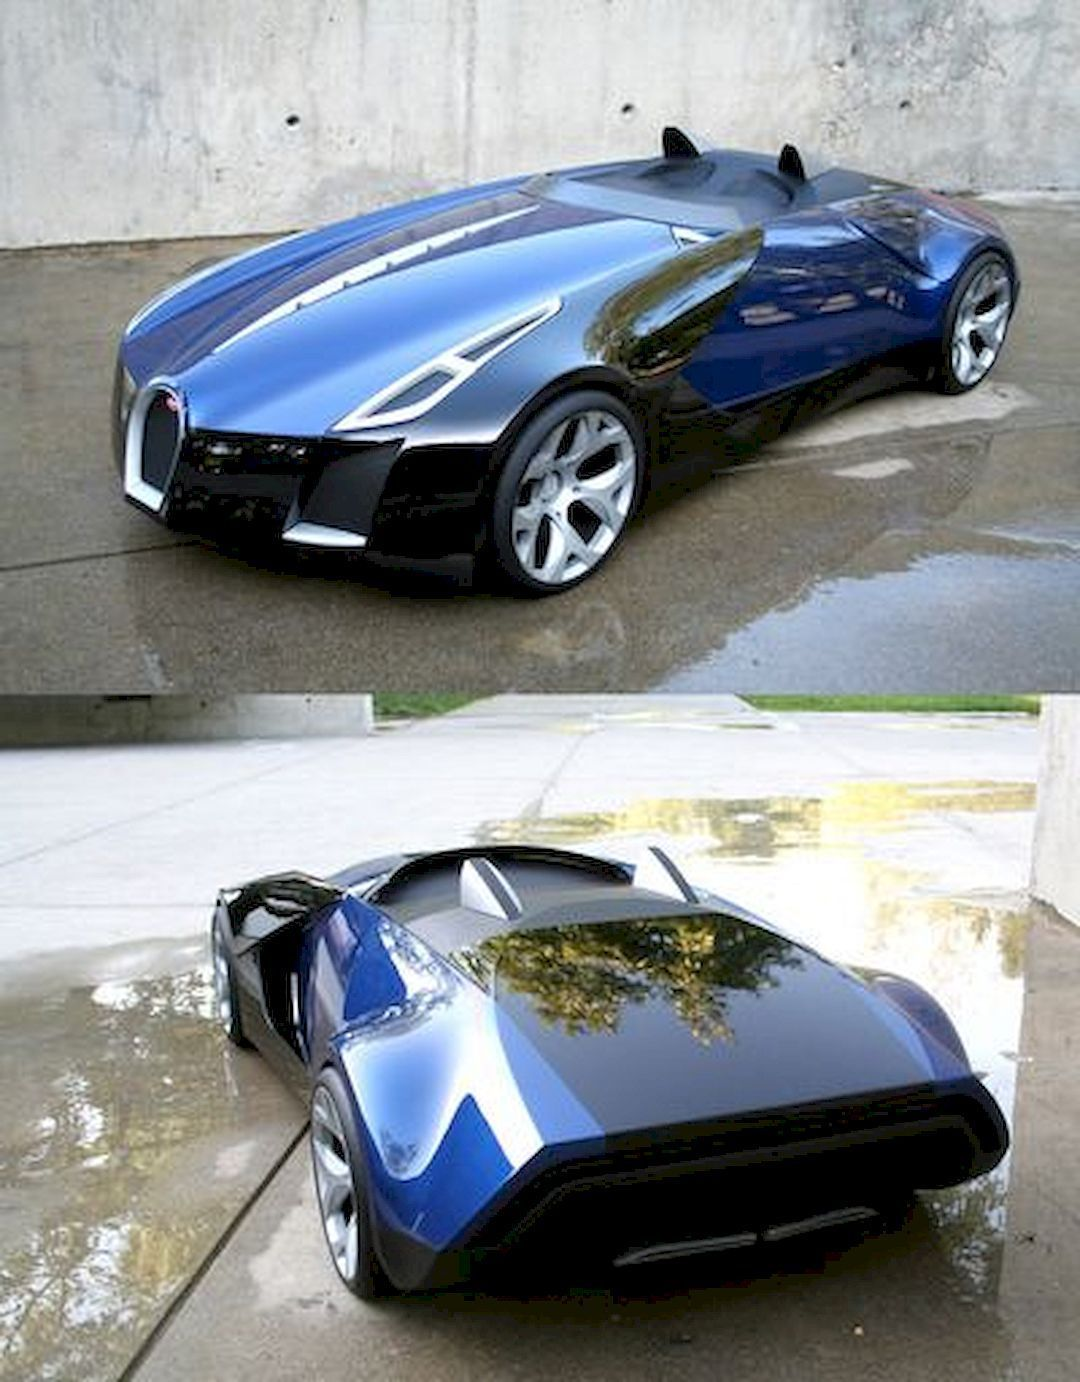 Super Cool Futuristic Car Design 16 Hybrid Cars Are Becoming Ever More Por With A Greater Variety Available Than Before